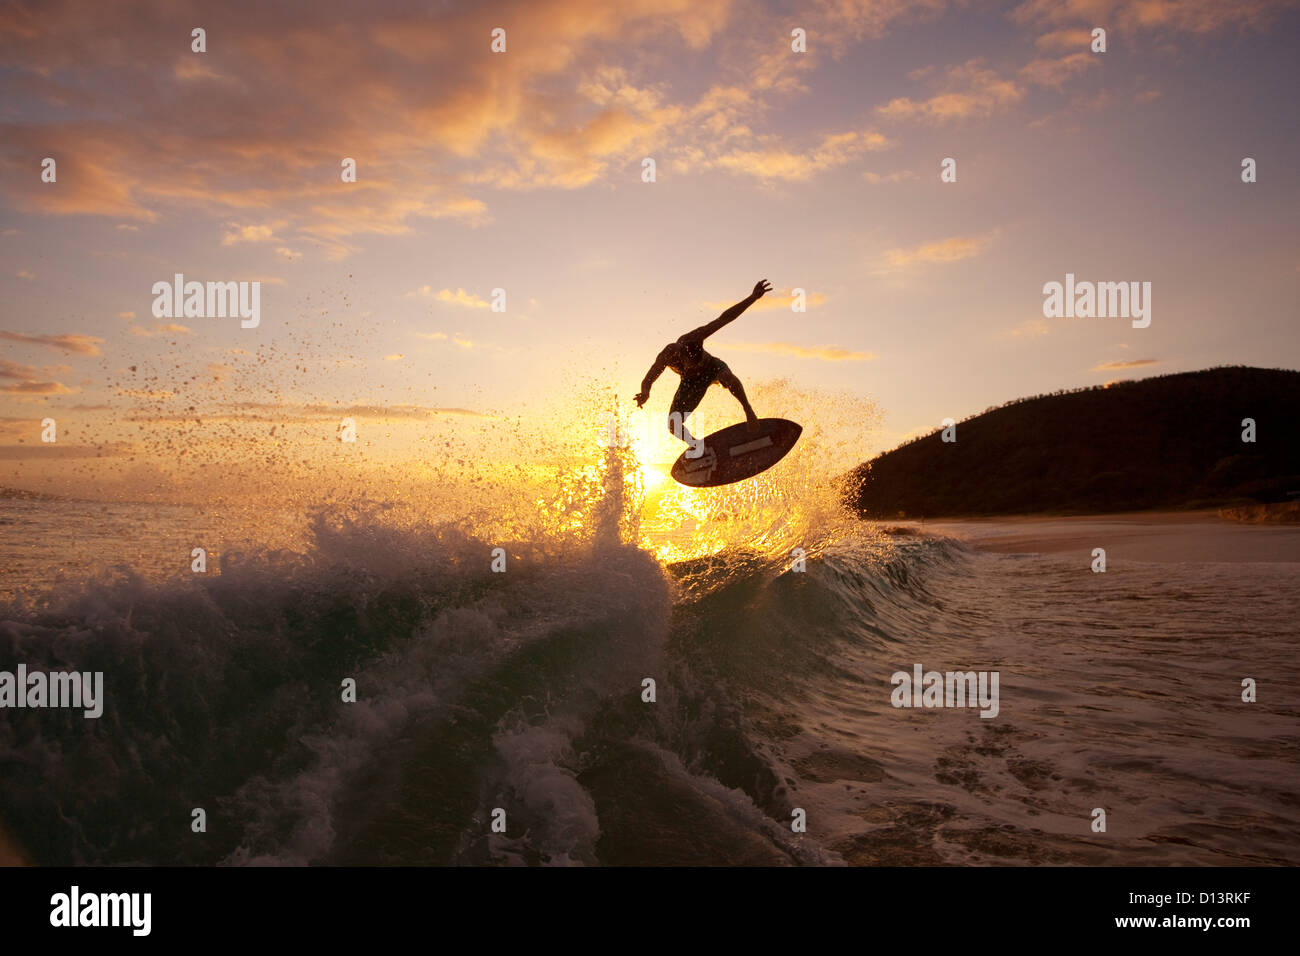 Hawaii, Maui, Makena, Skimboarder Gets Big Air Off A Wave At Sunset - Stock Image